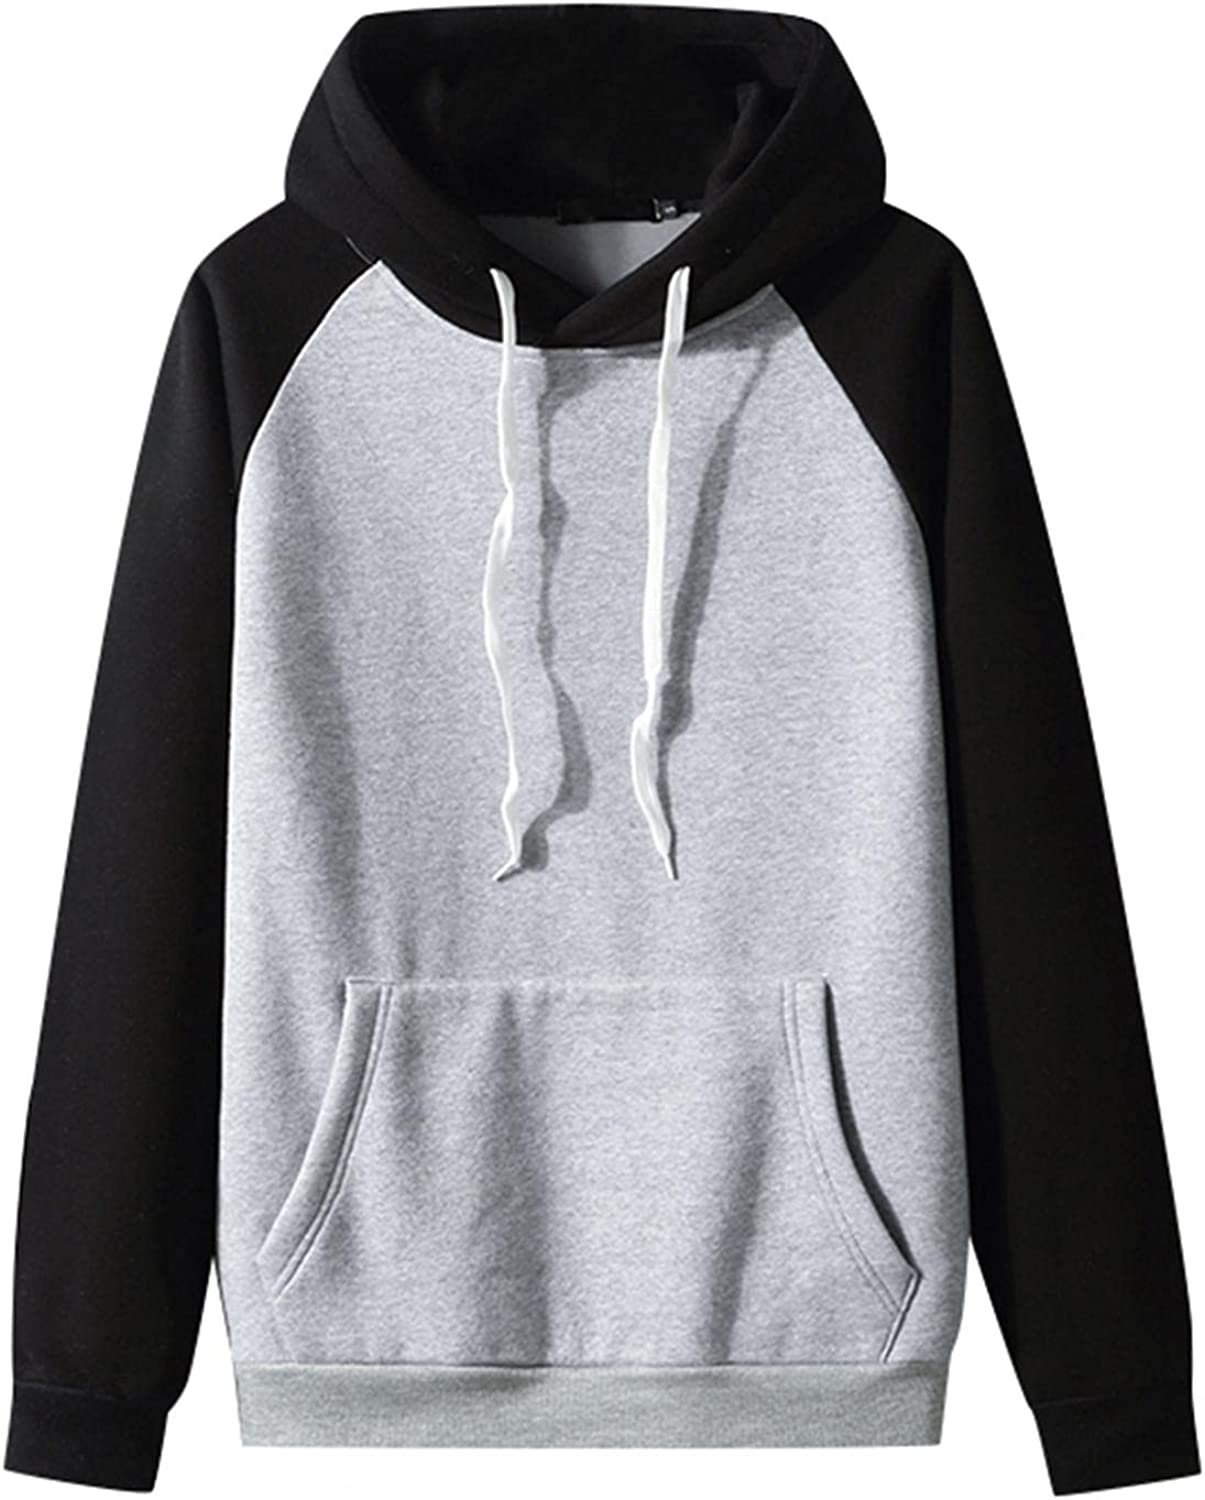 Hoodies for Men Cozy BlockColor Fashion Sport Sweatshirt Drawstring Long Sleeve Gym Fleece Pullover with Packet